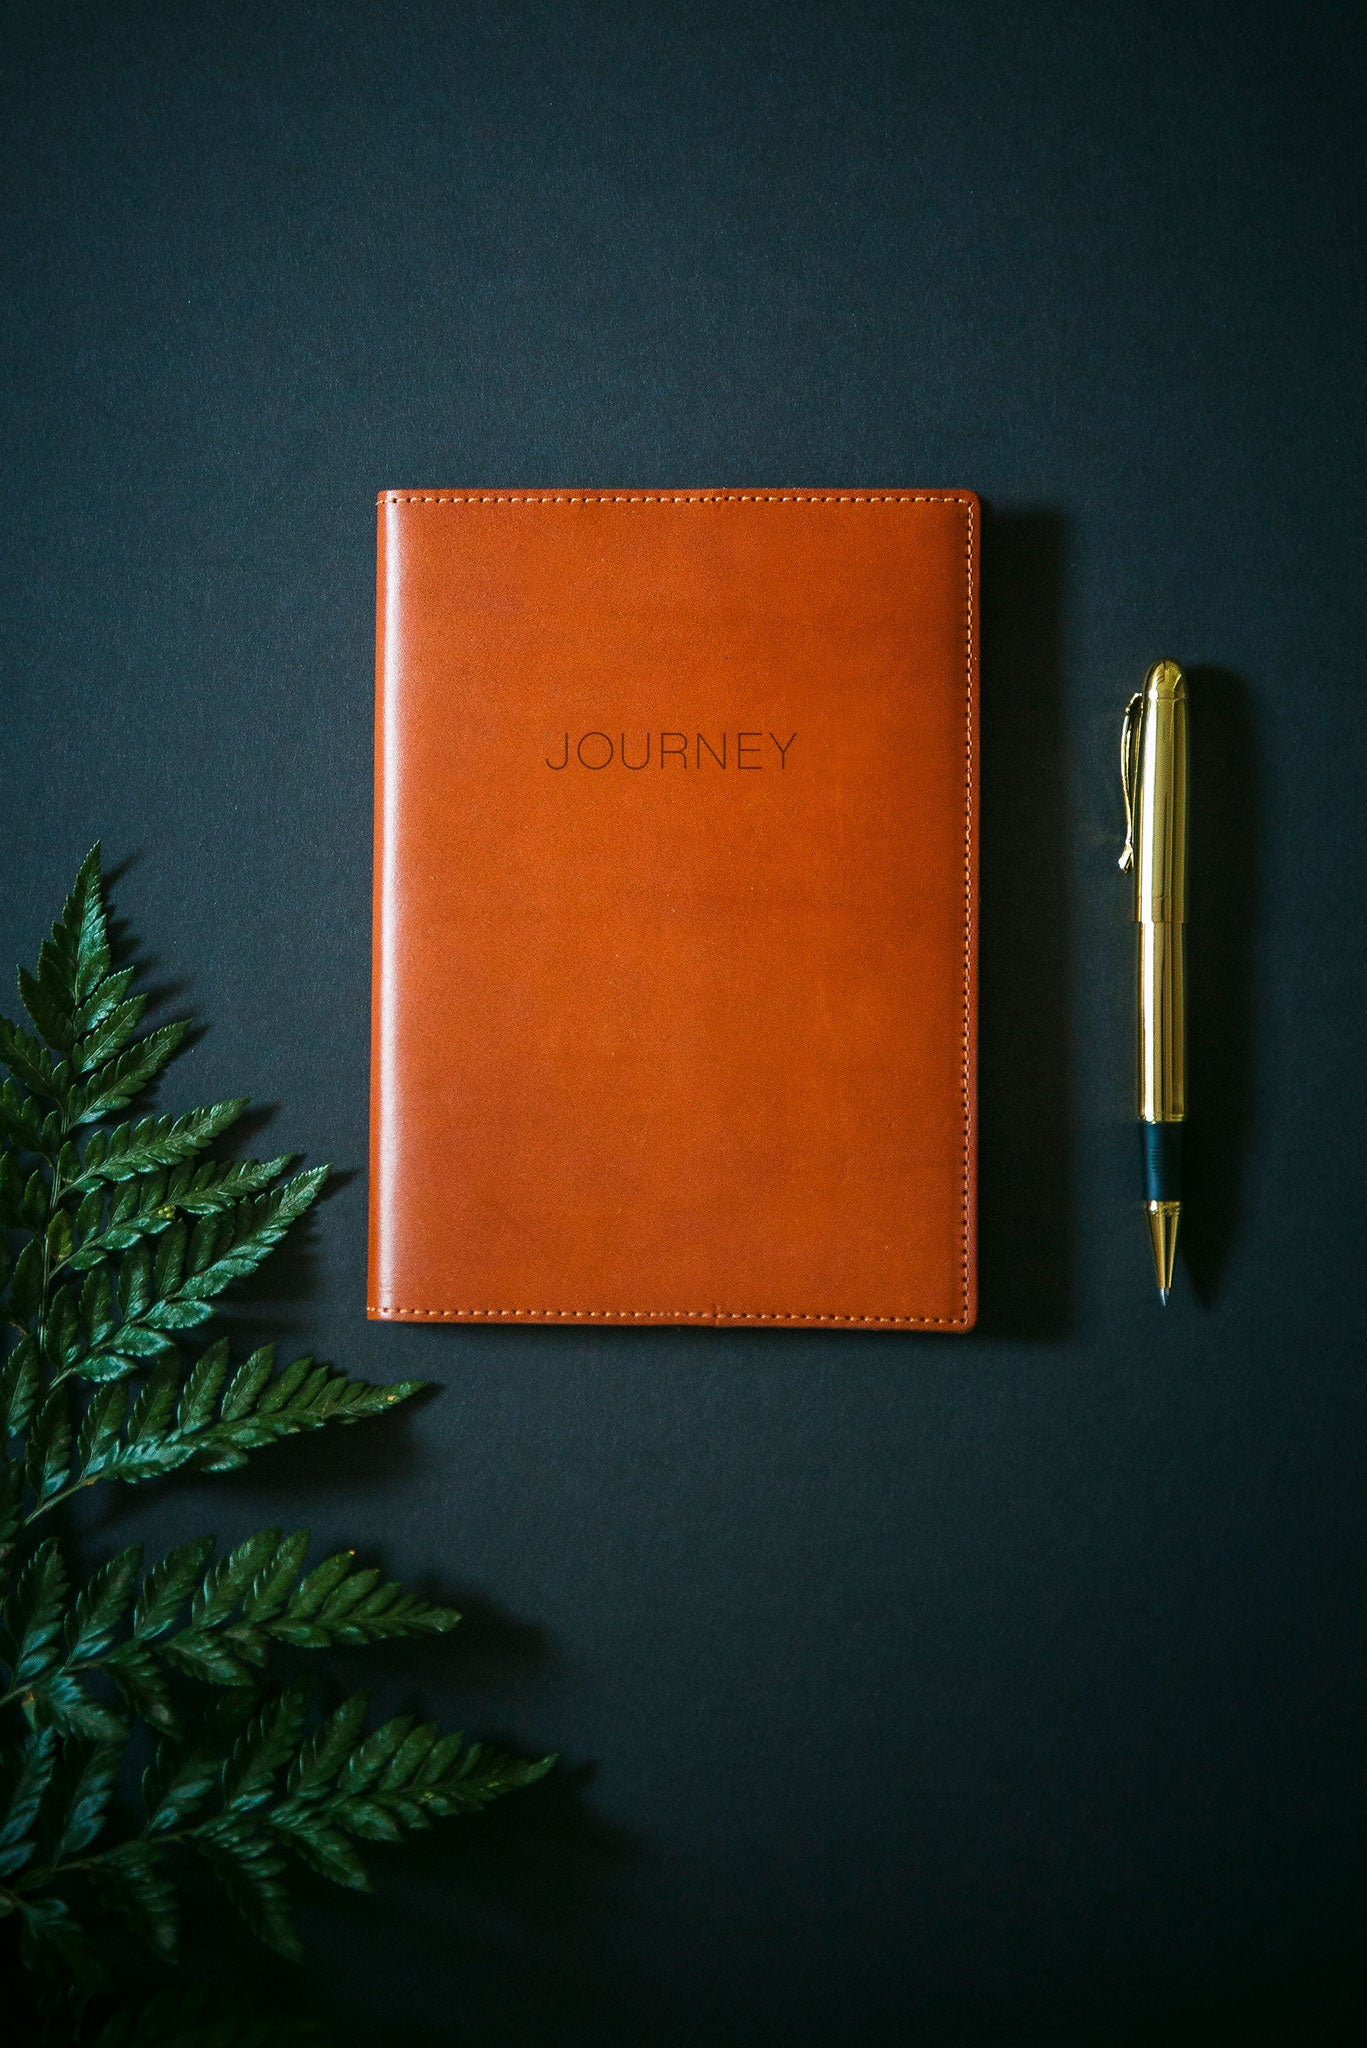 FOTO | Cognac Leather Journal for Travel - refillable genuine leather journal cover can be personalized with gold foil initials, a monogram or personal graphic making it the perfect personalized gift.